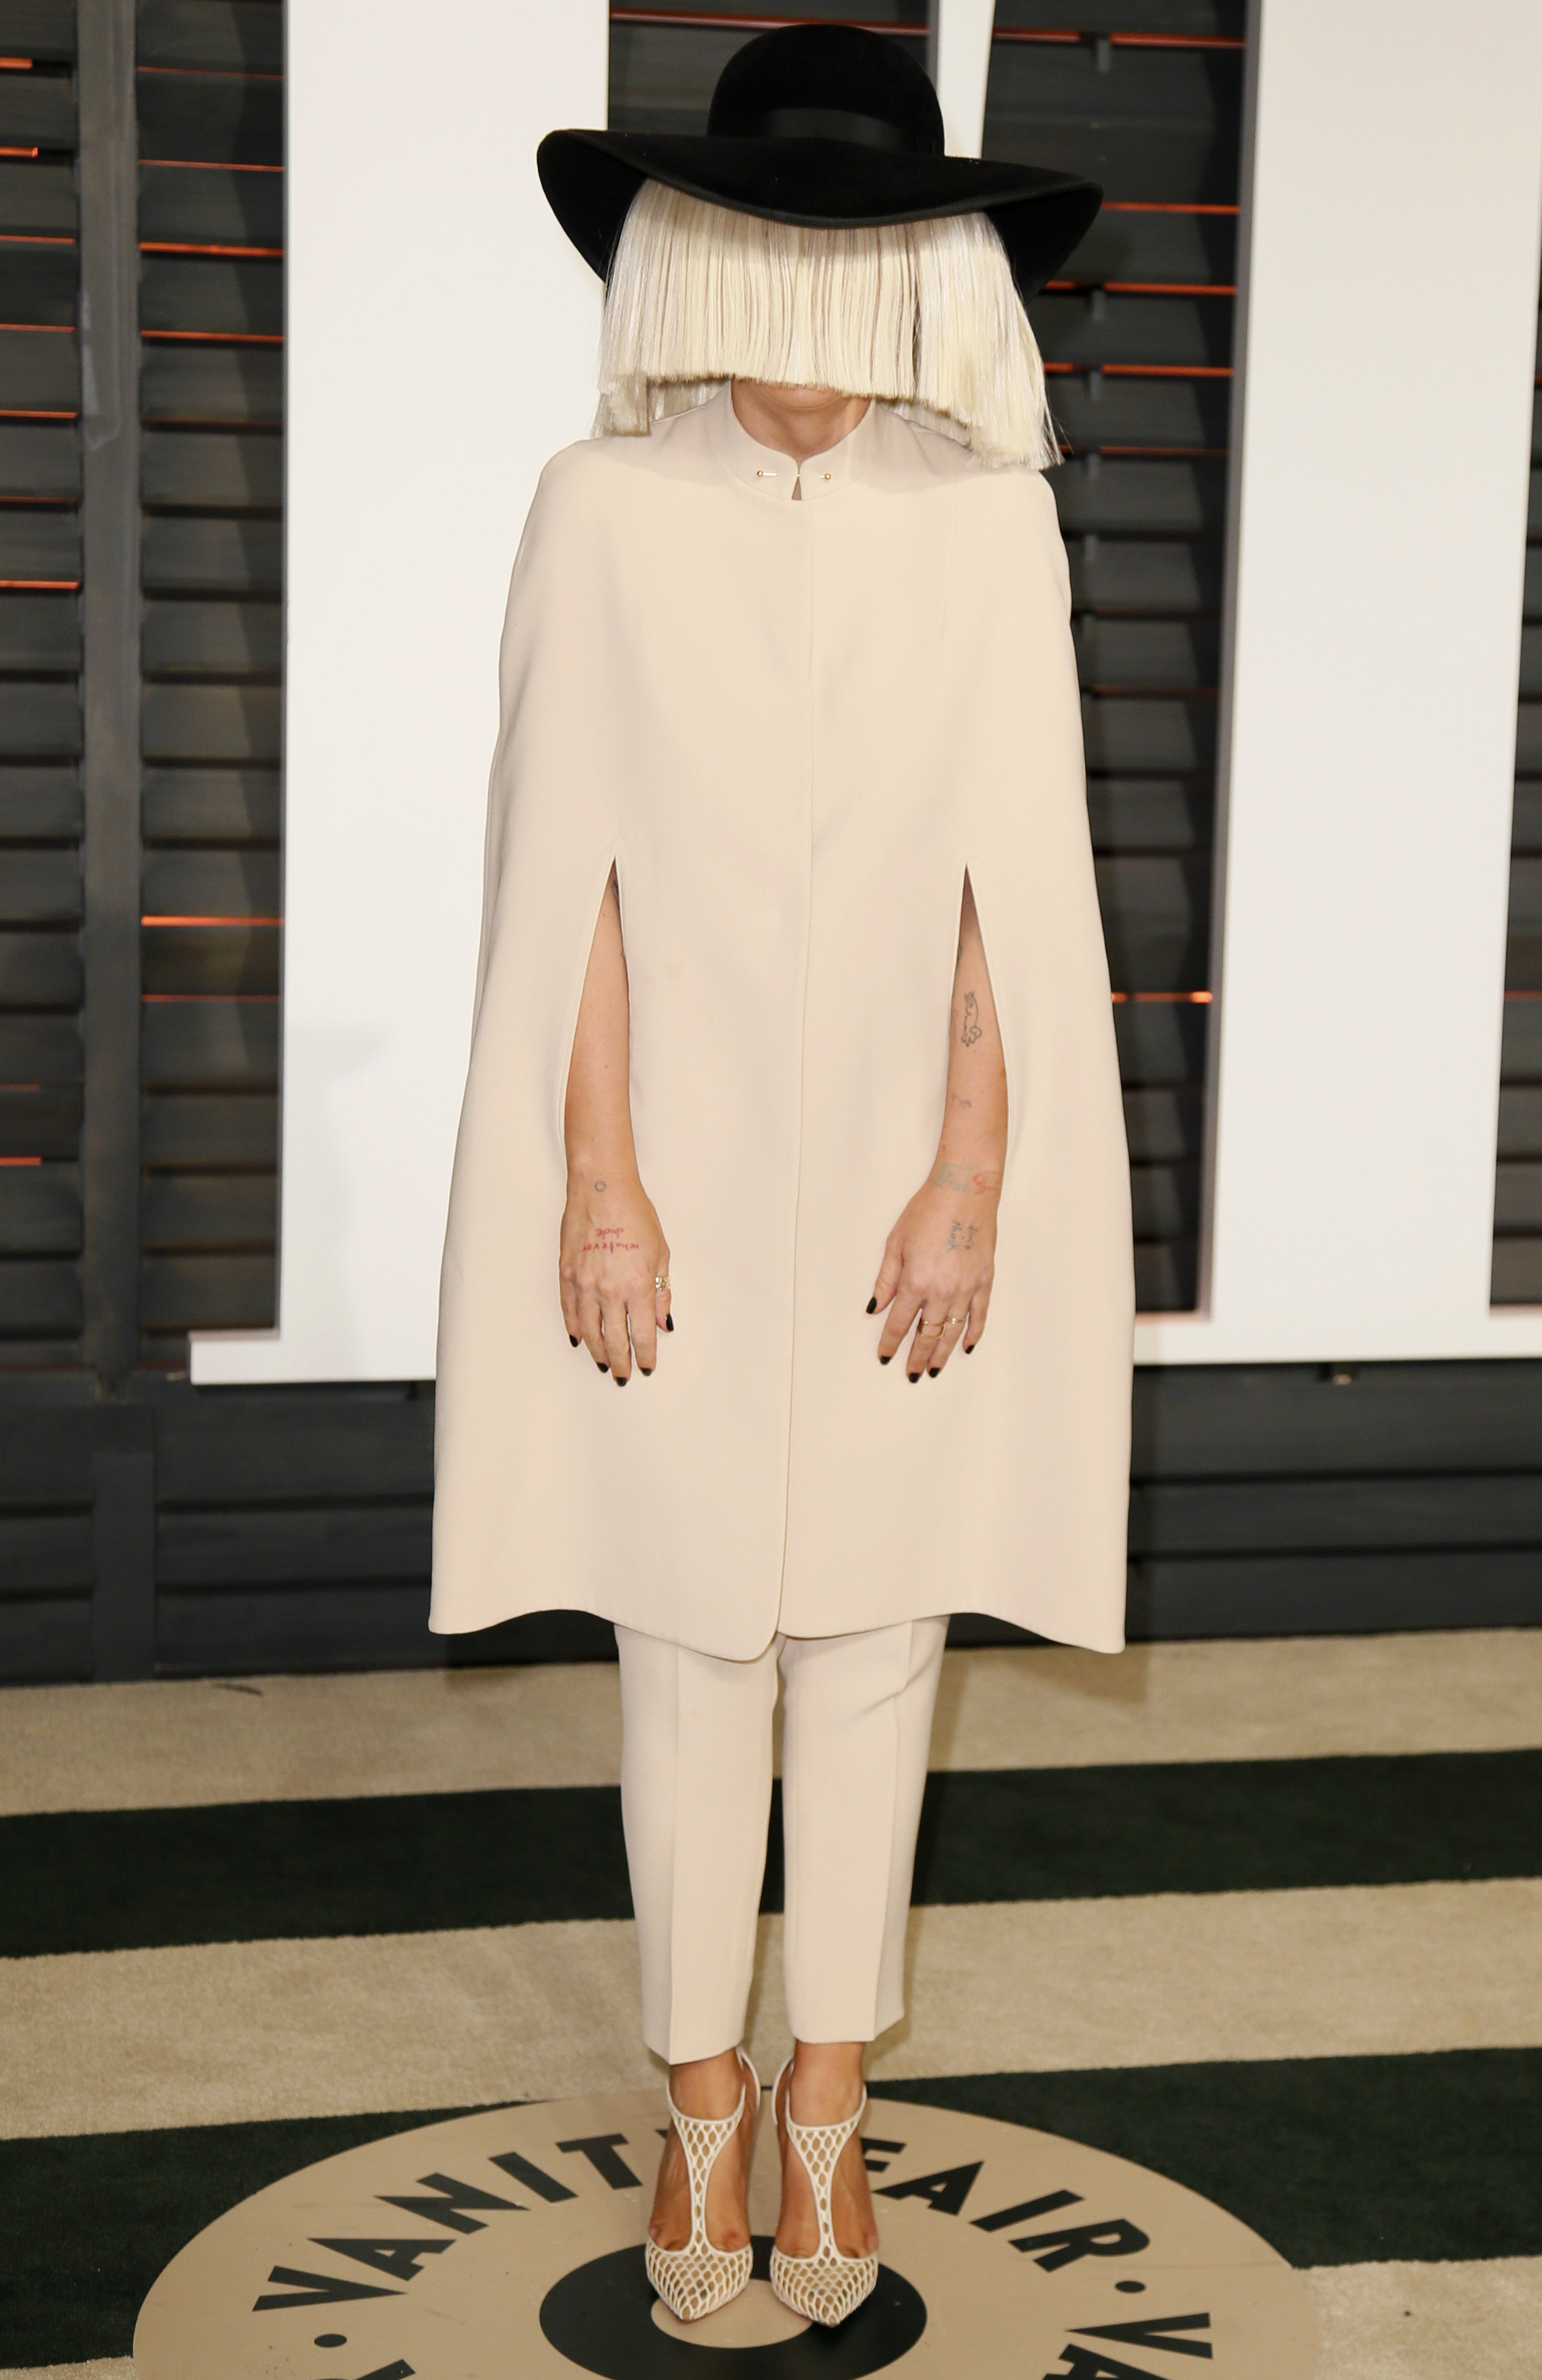 Singer Sia arrives  at the 2015 Vanity Fair Oscar Party in Beverly Hills, California February 22, 2015.  REUTERS/Danny Moloshok (UNITED STATES  - Tags: ENTERTAINMENT)  (VANITYFAIR-ARRIVALS)  - RTR4QPRF